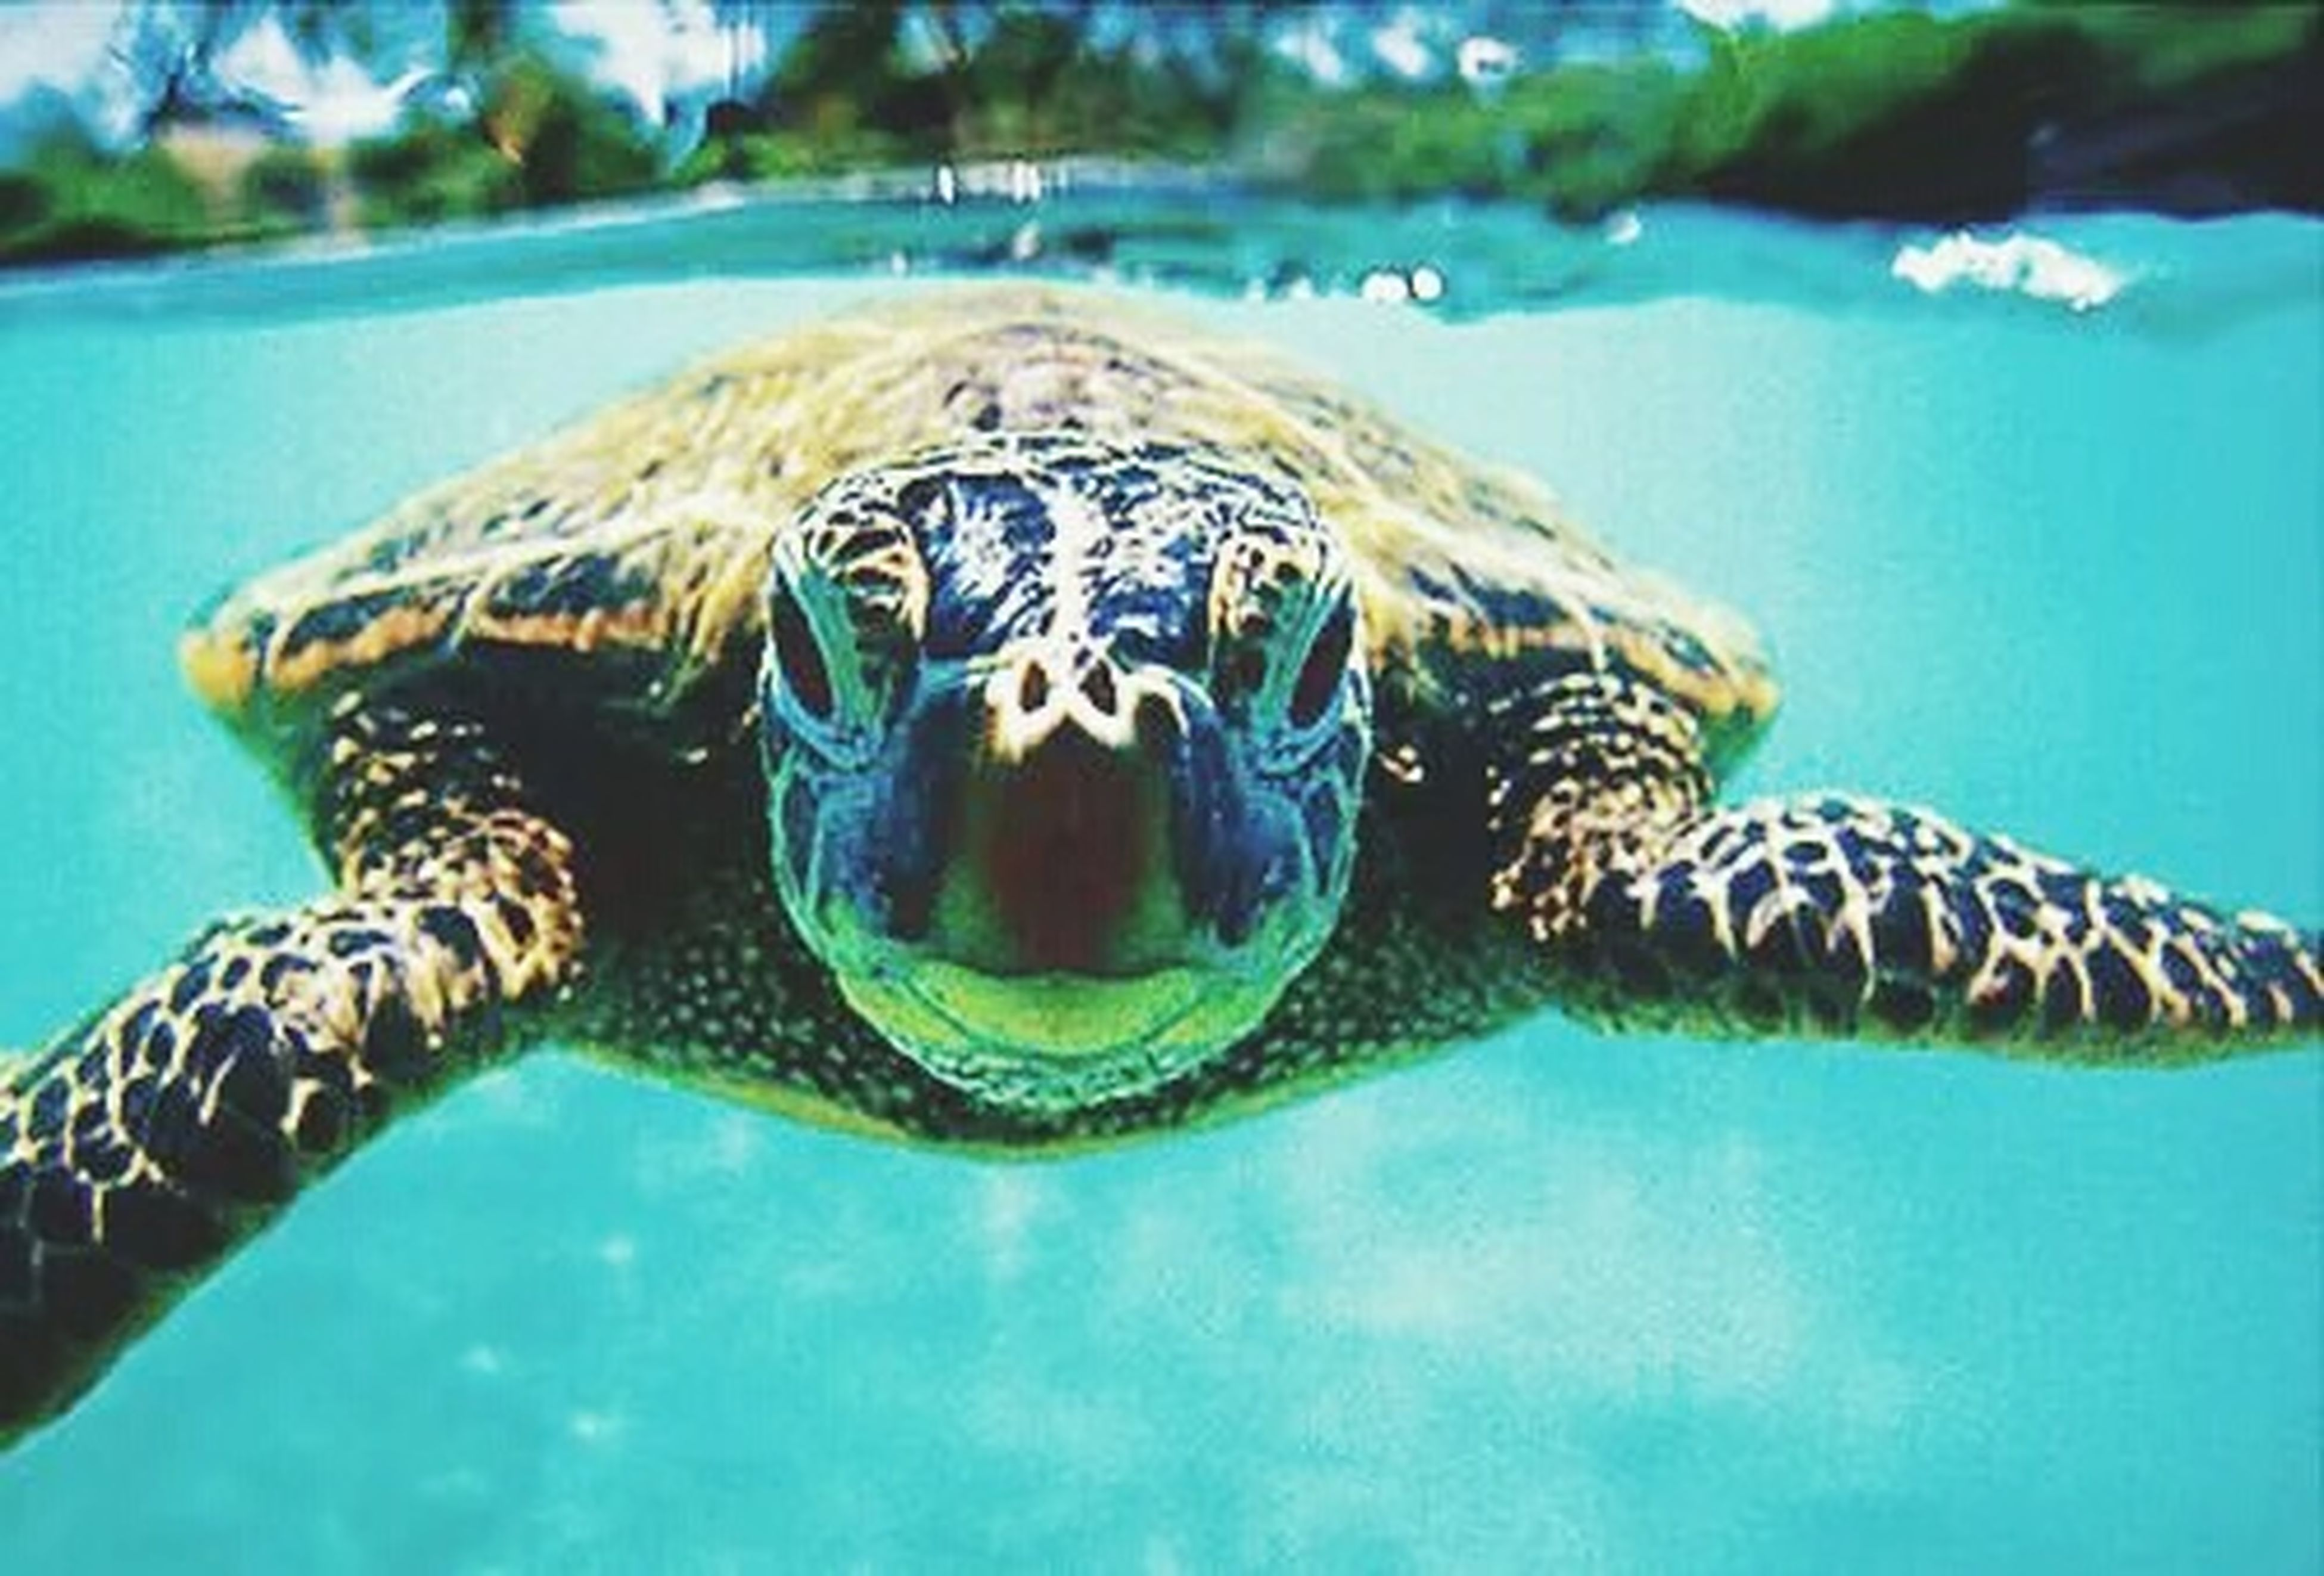 animal themes, animals in the wild, wildlife, swimming, one animal, water, underwater, blue, sea life, animals in captivity, fish, zoo, reptile, animal markings, close-up, undersea, turtle, zoology, nature, two animals